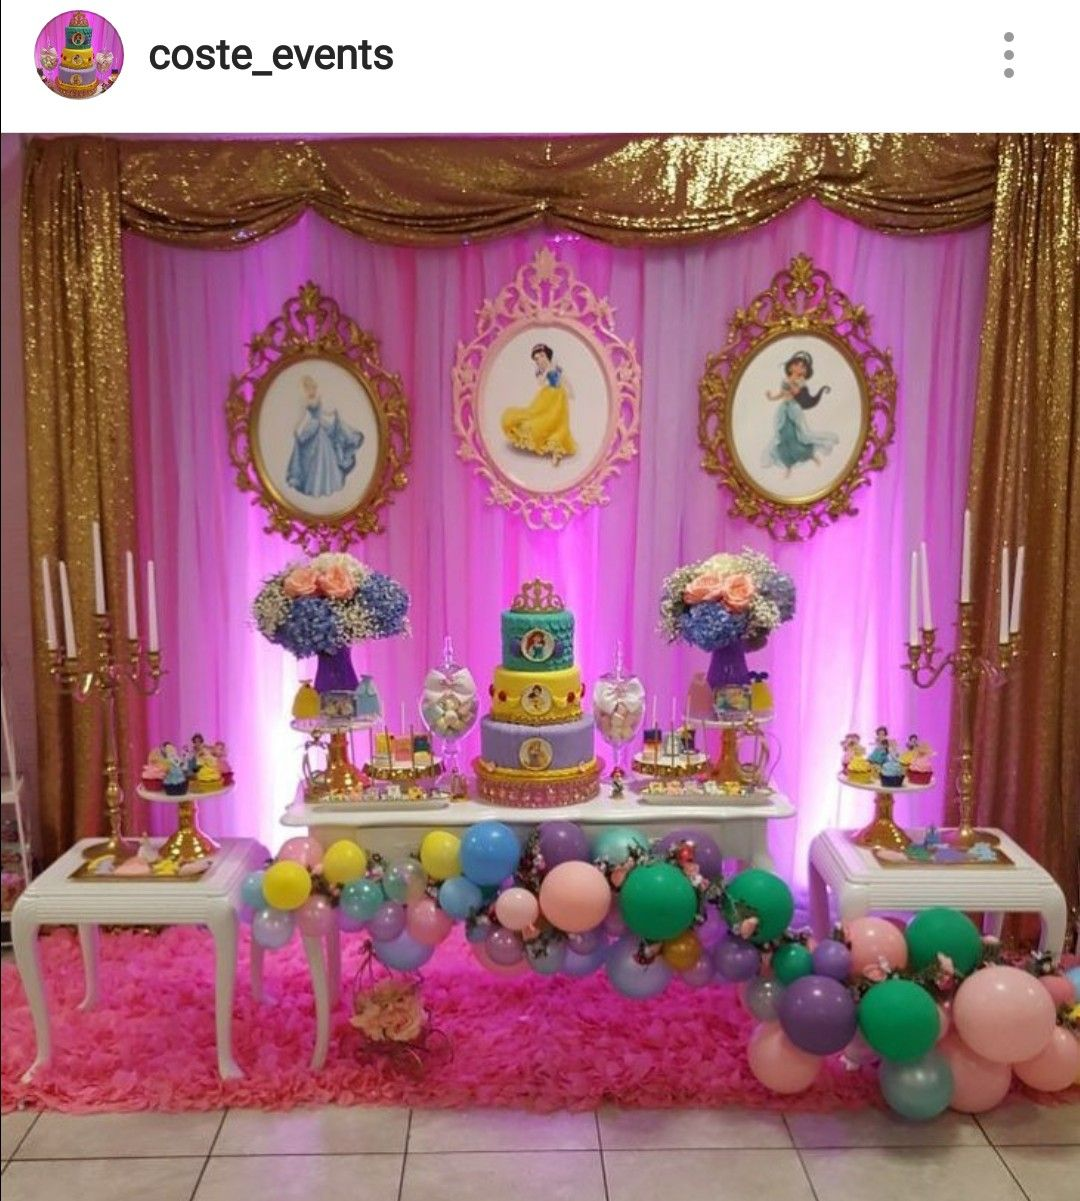 Disney Princess Birthday Party Dessert Table and Decor